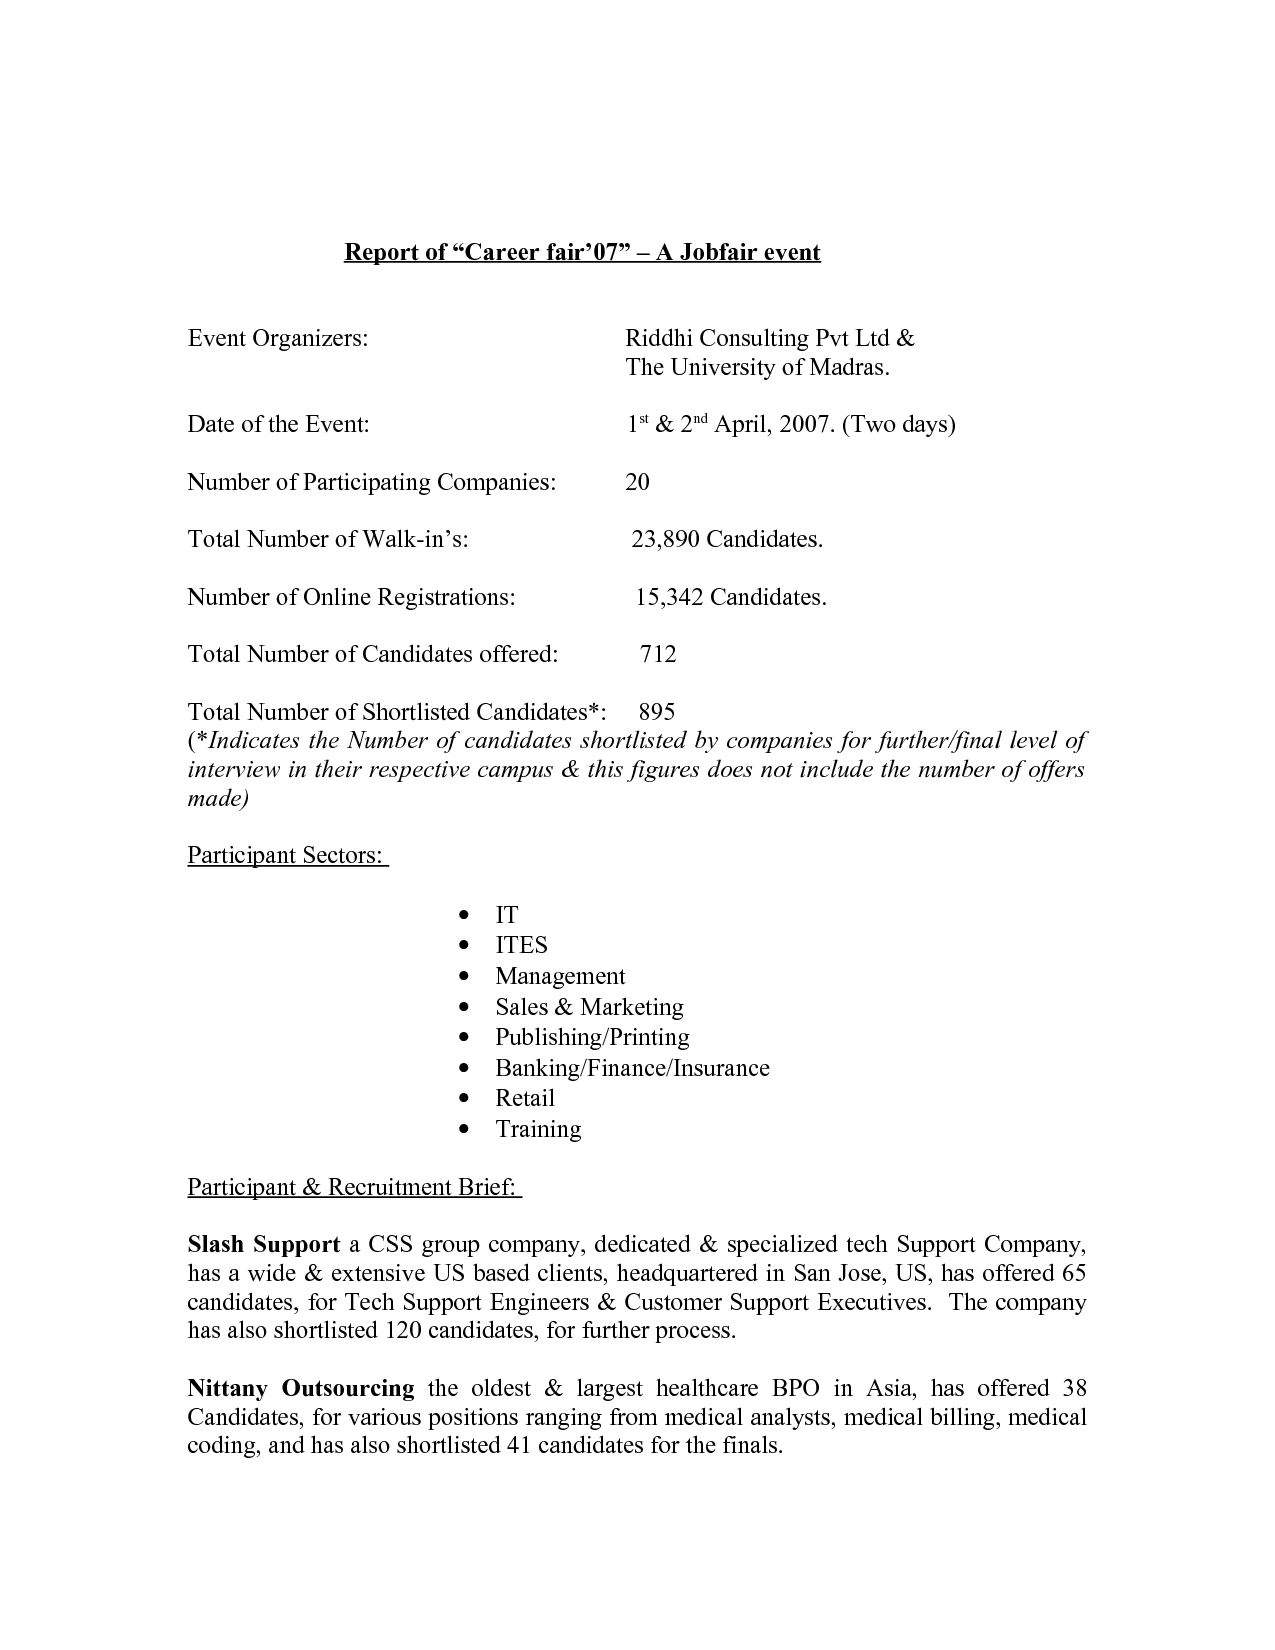 Resume Format For Freshers Free Download Resume Format For Freshers Free  Download, Resume Format For  How To Write A Resume For Free